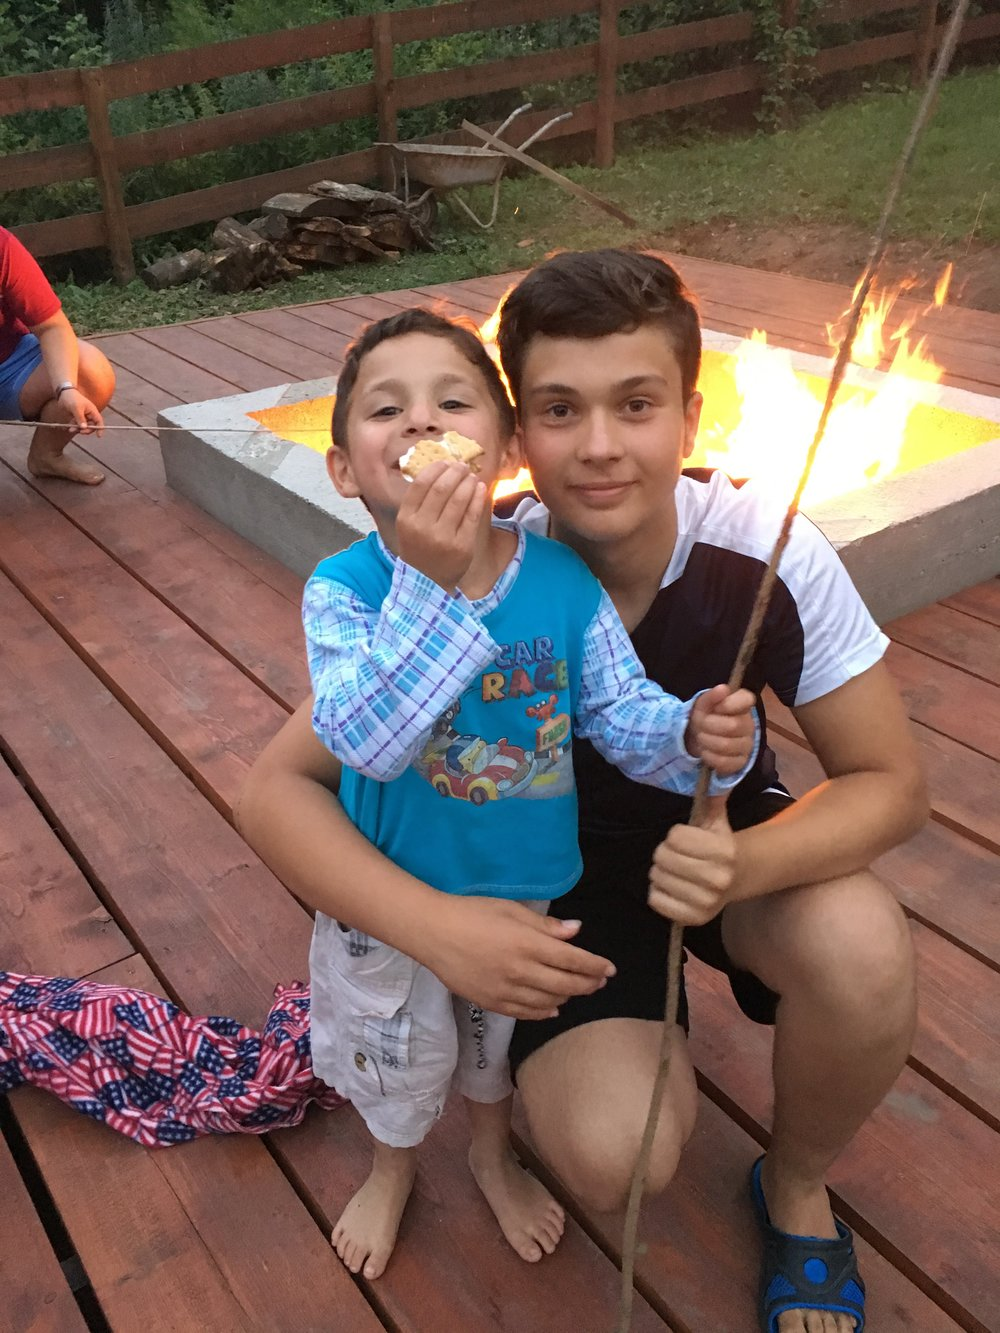 Everyone loves s'mores!